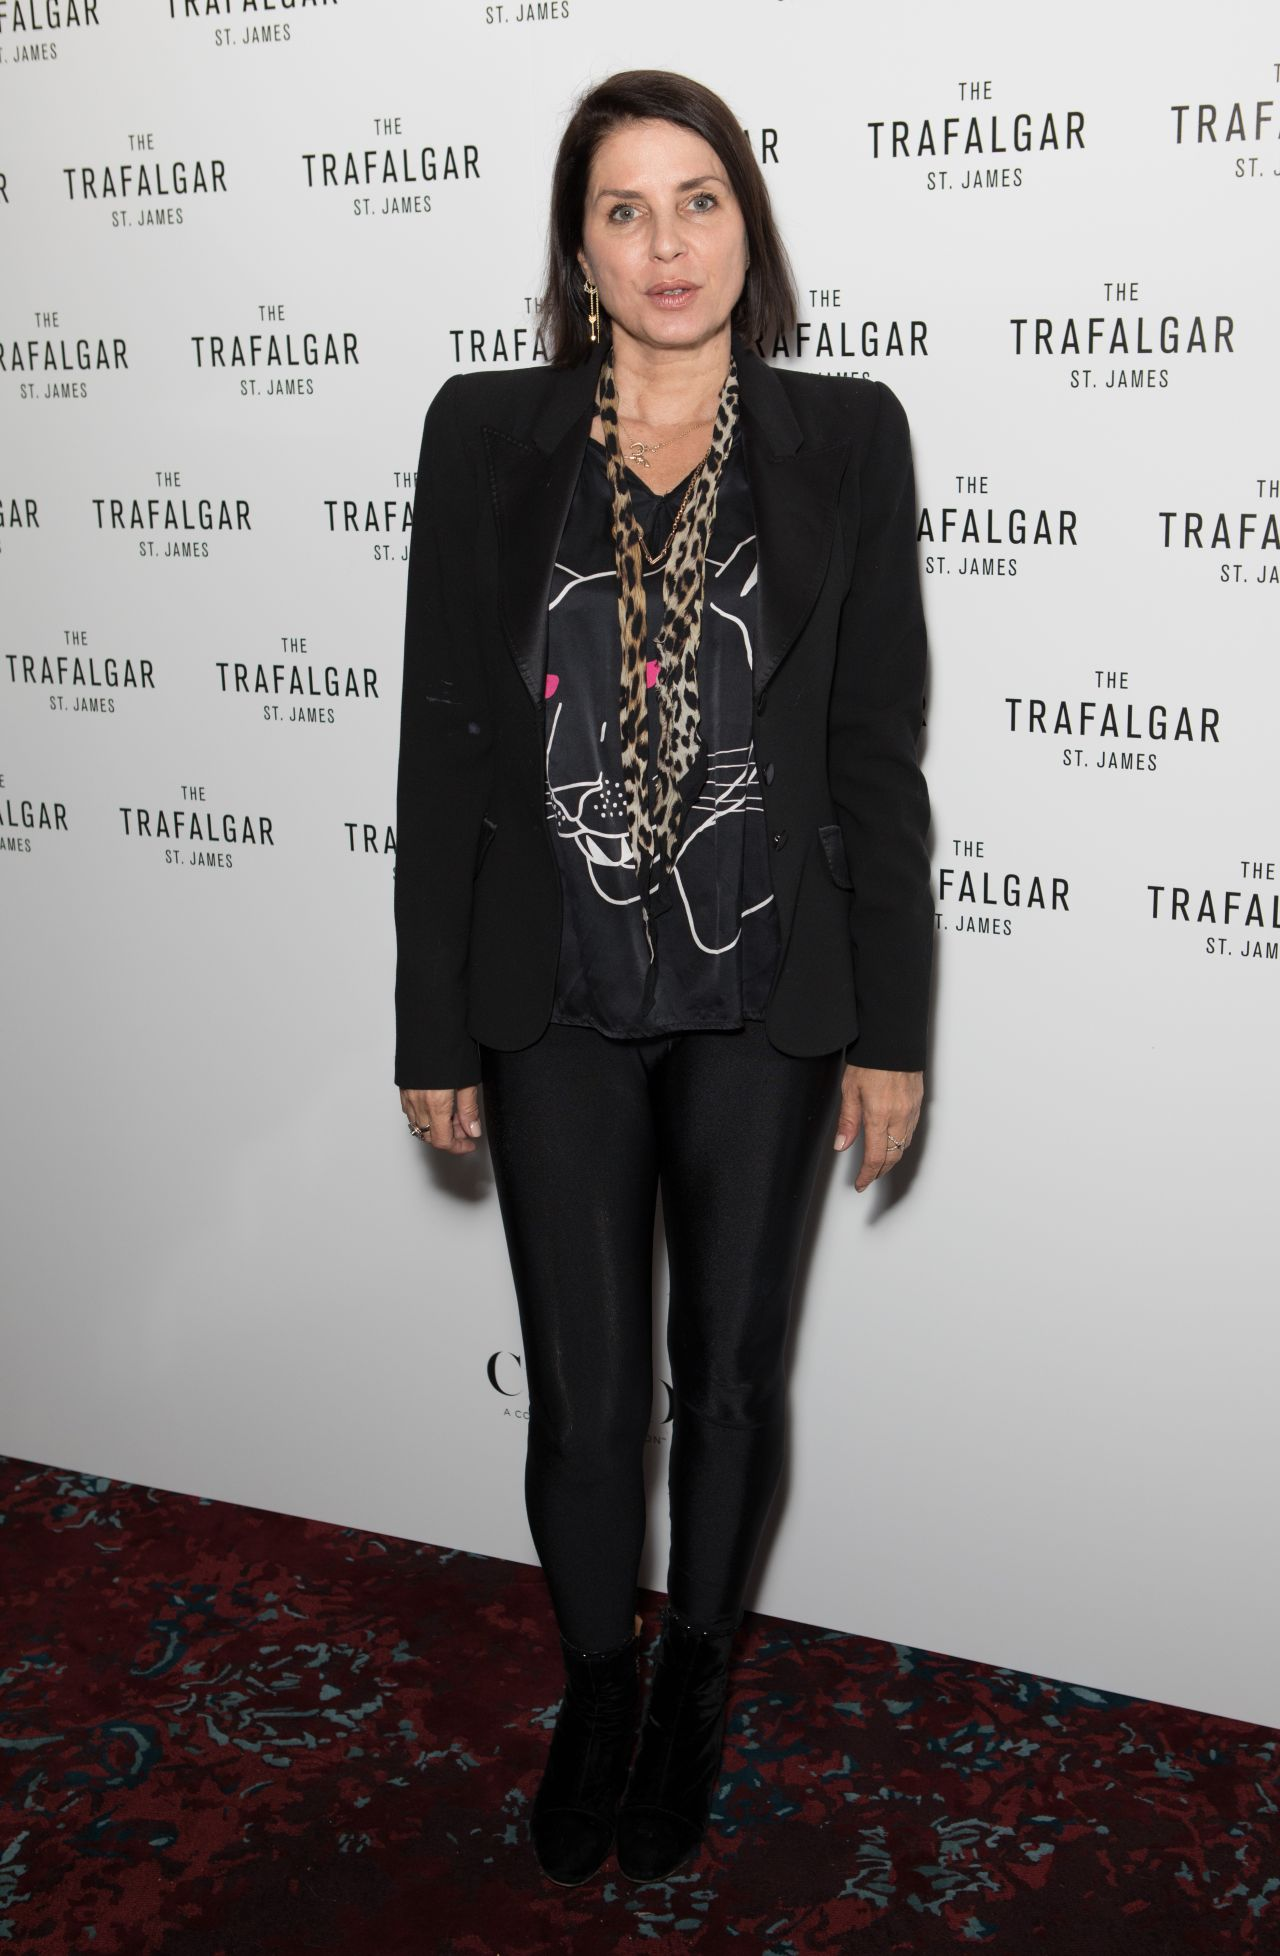 Sadie Frost The Trafalgar St James Launch Party In London